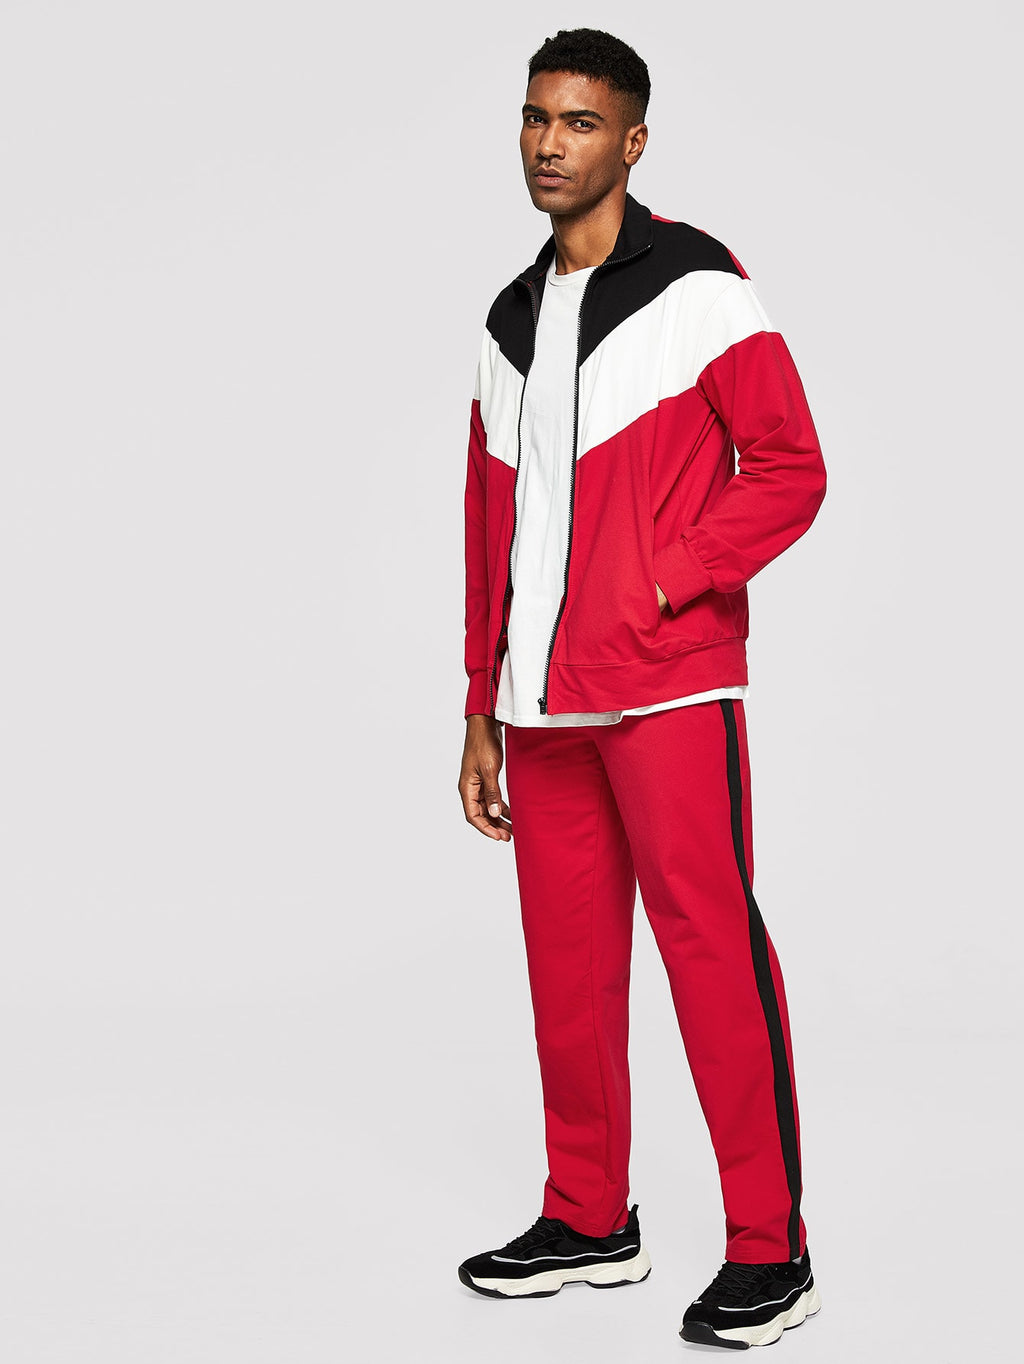 Men's Tracksuit - Zip Up Color-Block Sweatshirt & Pants Set